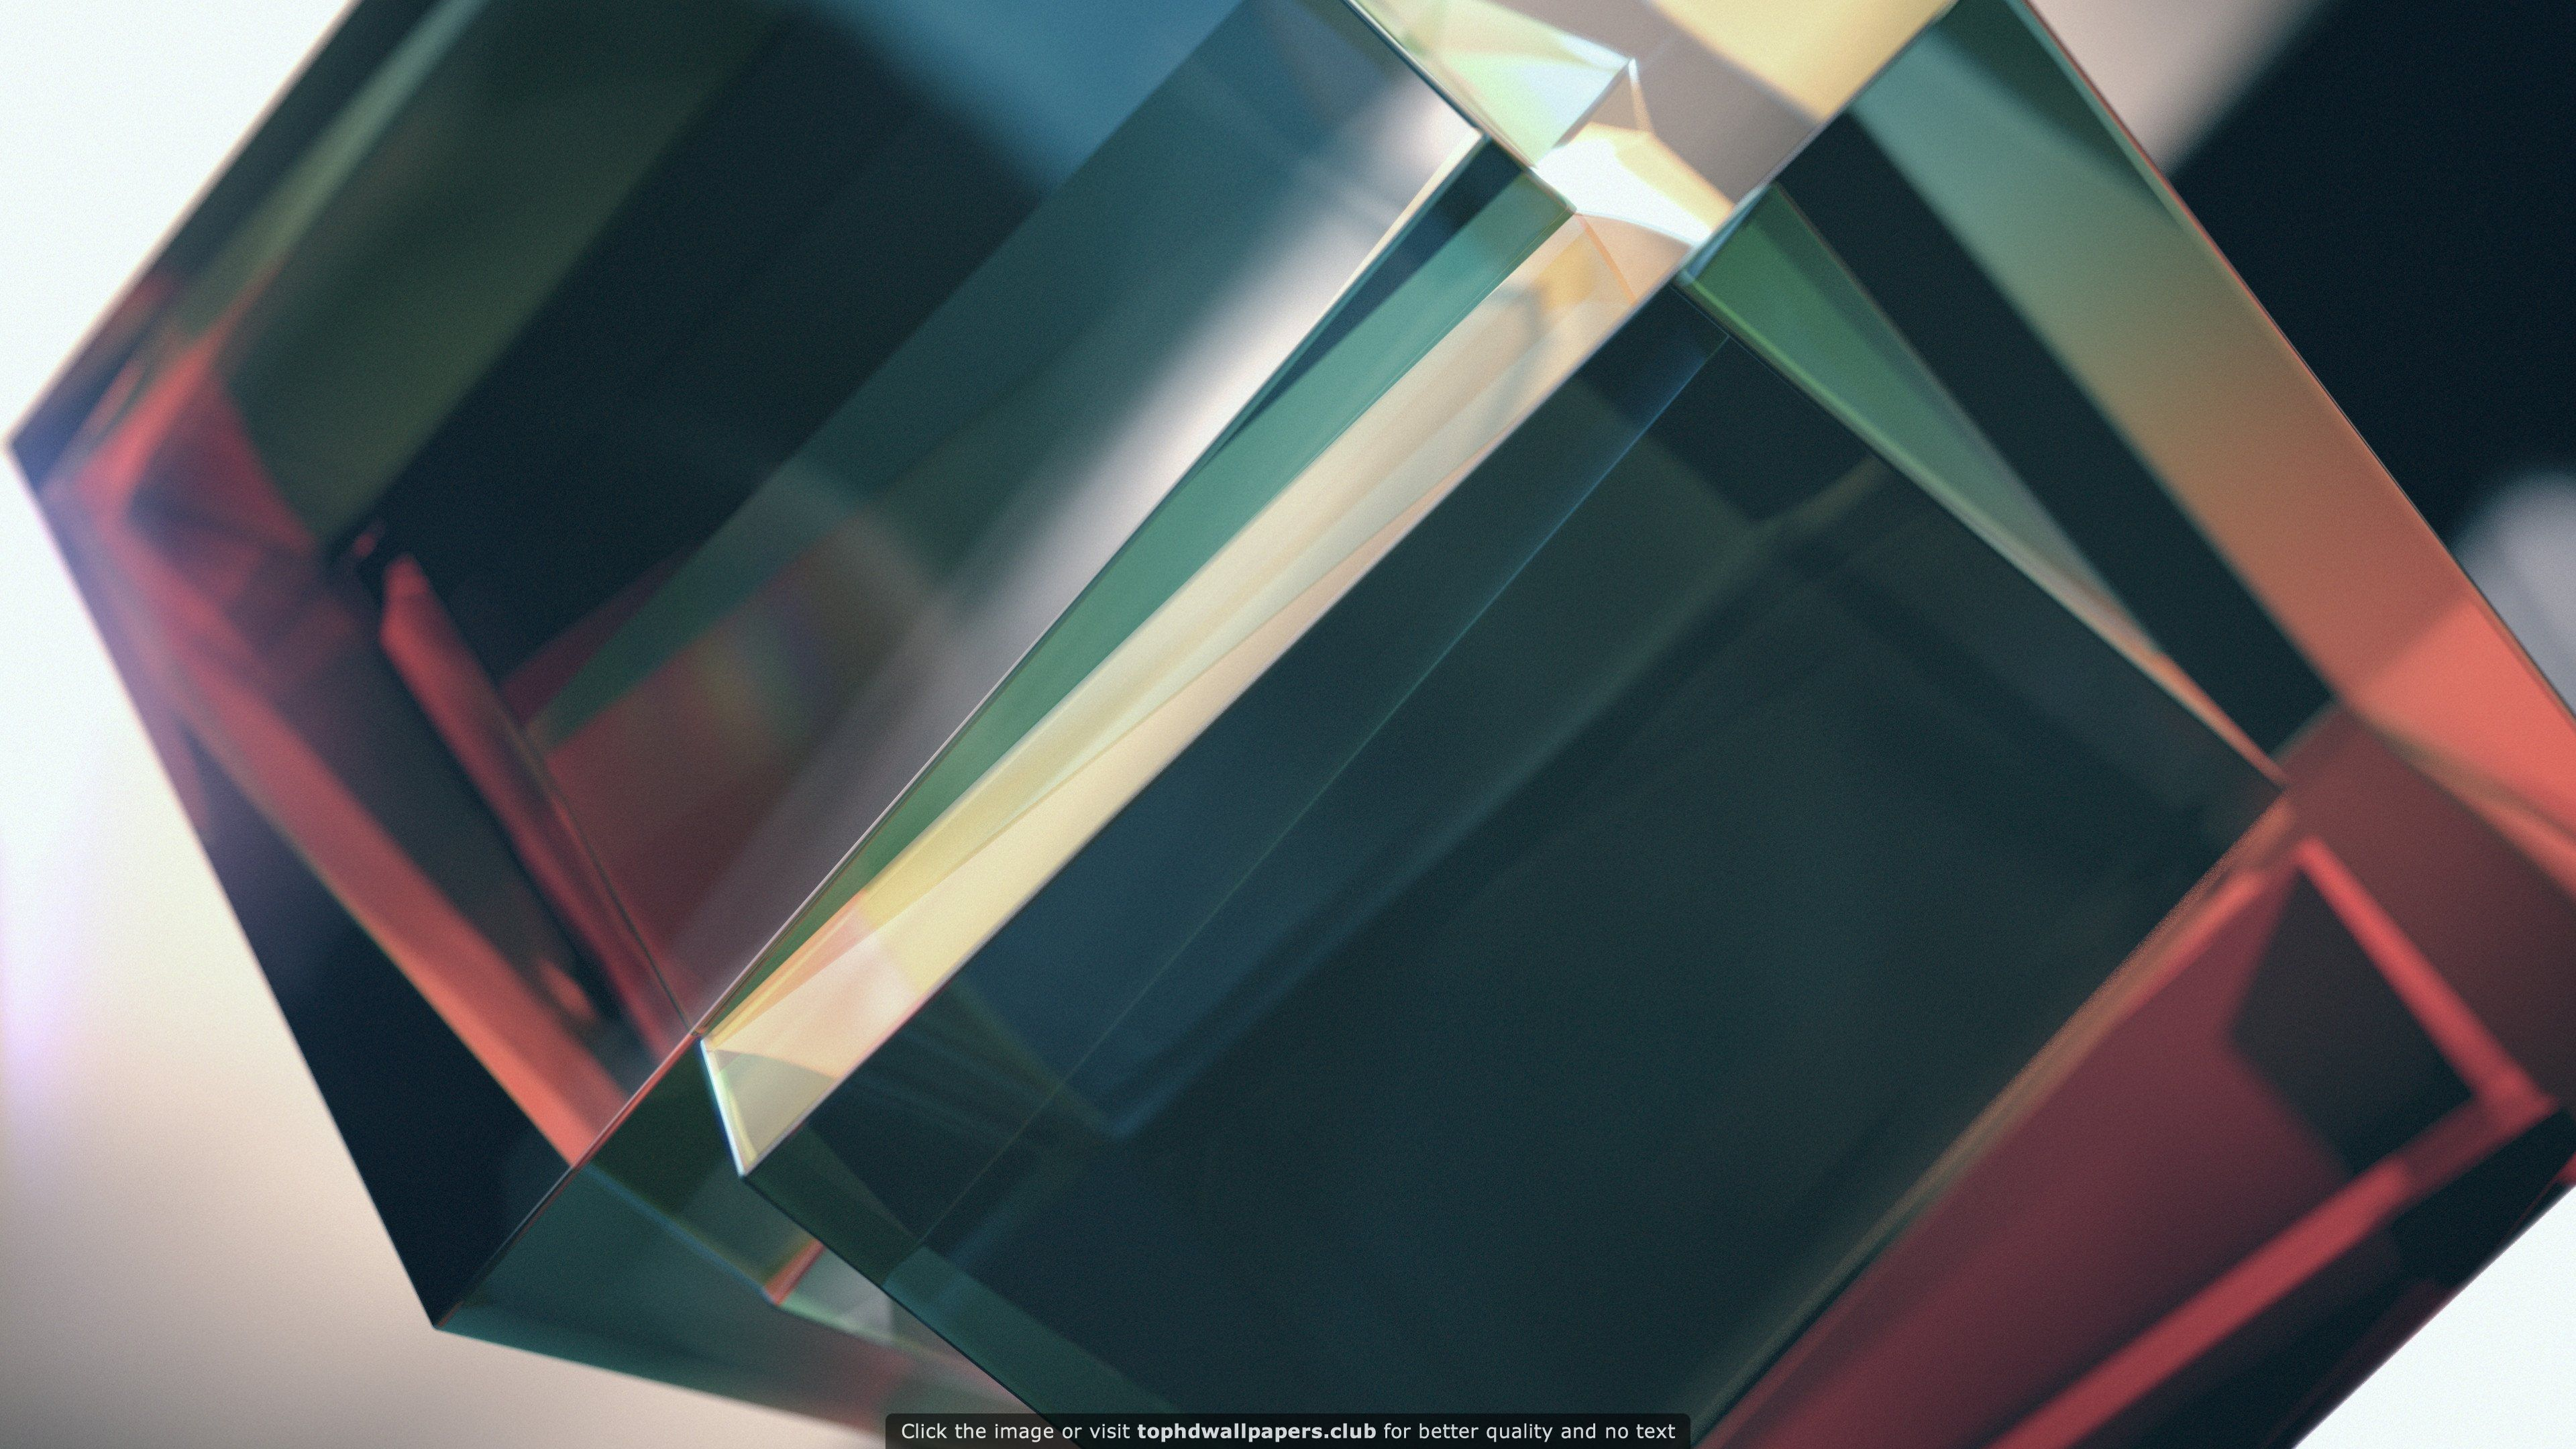 Abstract 30126 wallpaper Abstract, 4k wallpapers for pc